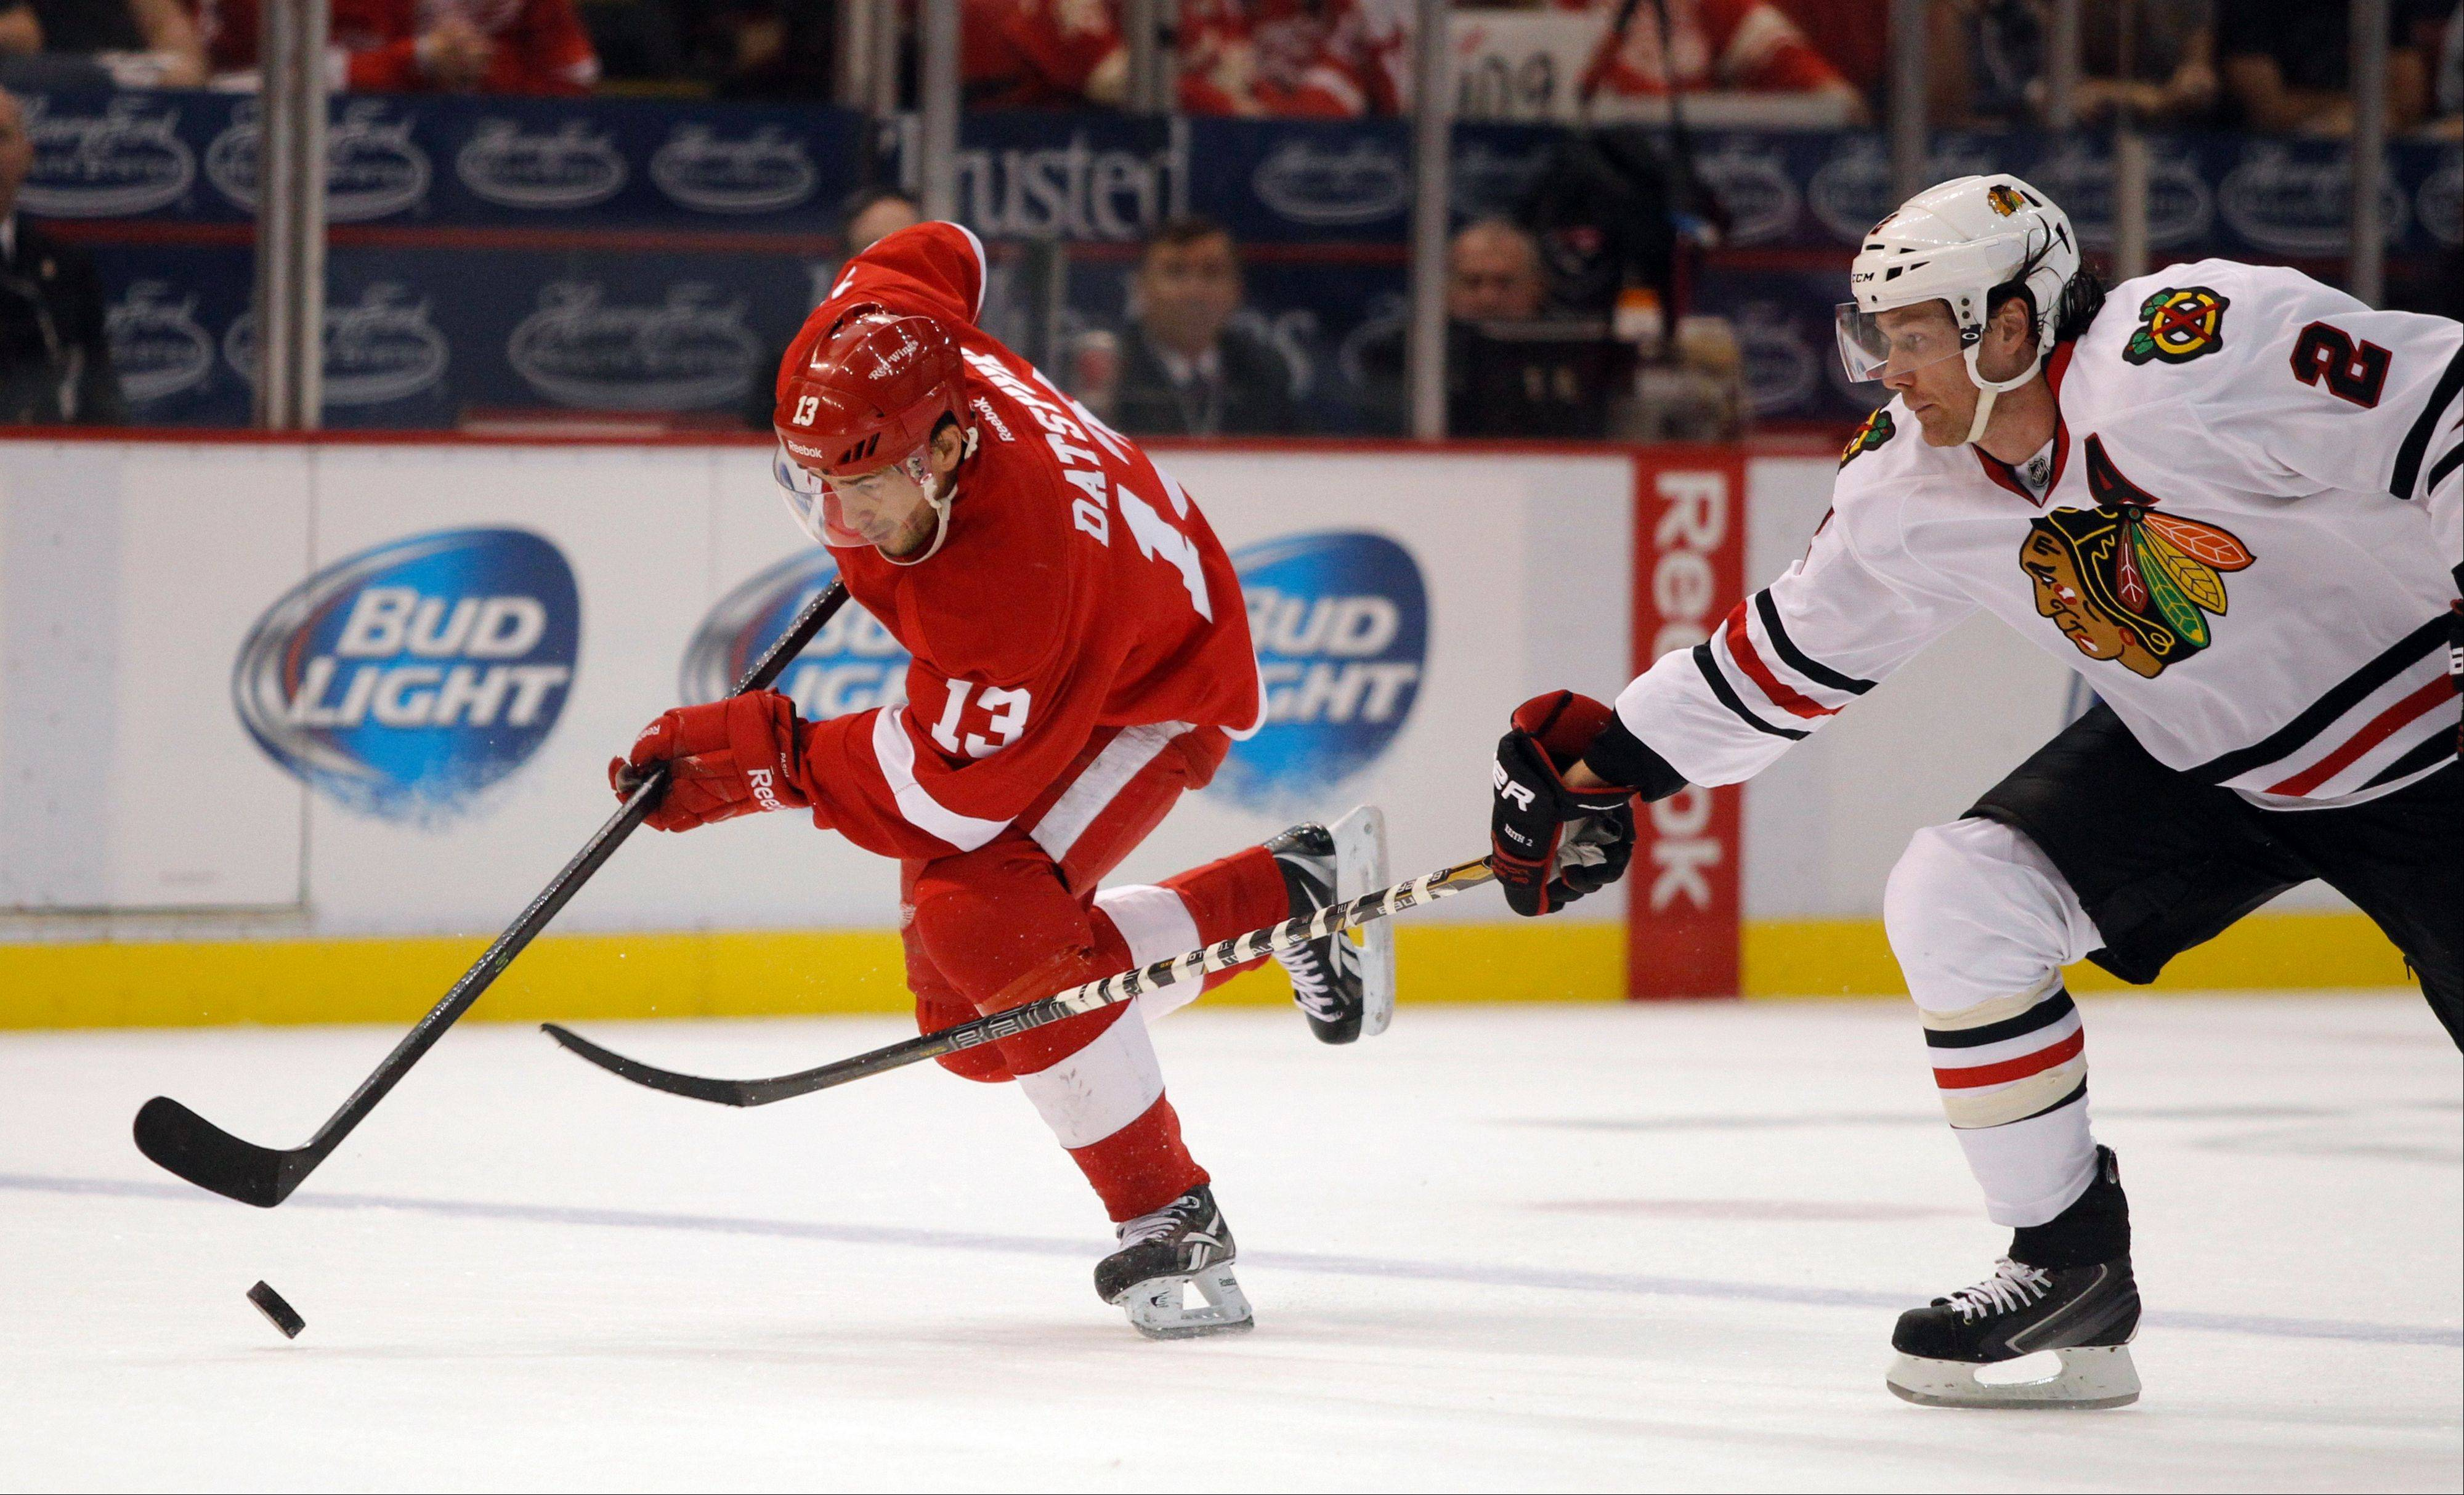 With the NHL's realignment shifting the Detroit Red Wings to the Eastern Conference, Pavel Datsyuk won't have to battle Blackhawks defenseman Duncan Keith as often.